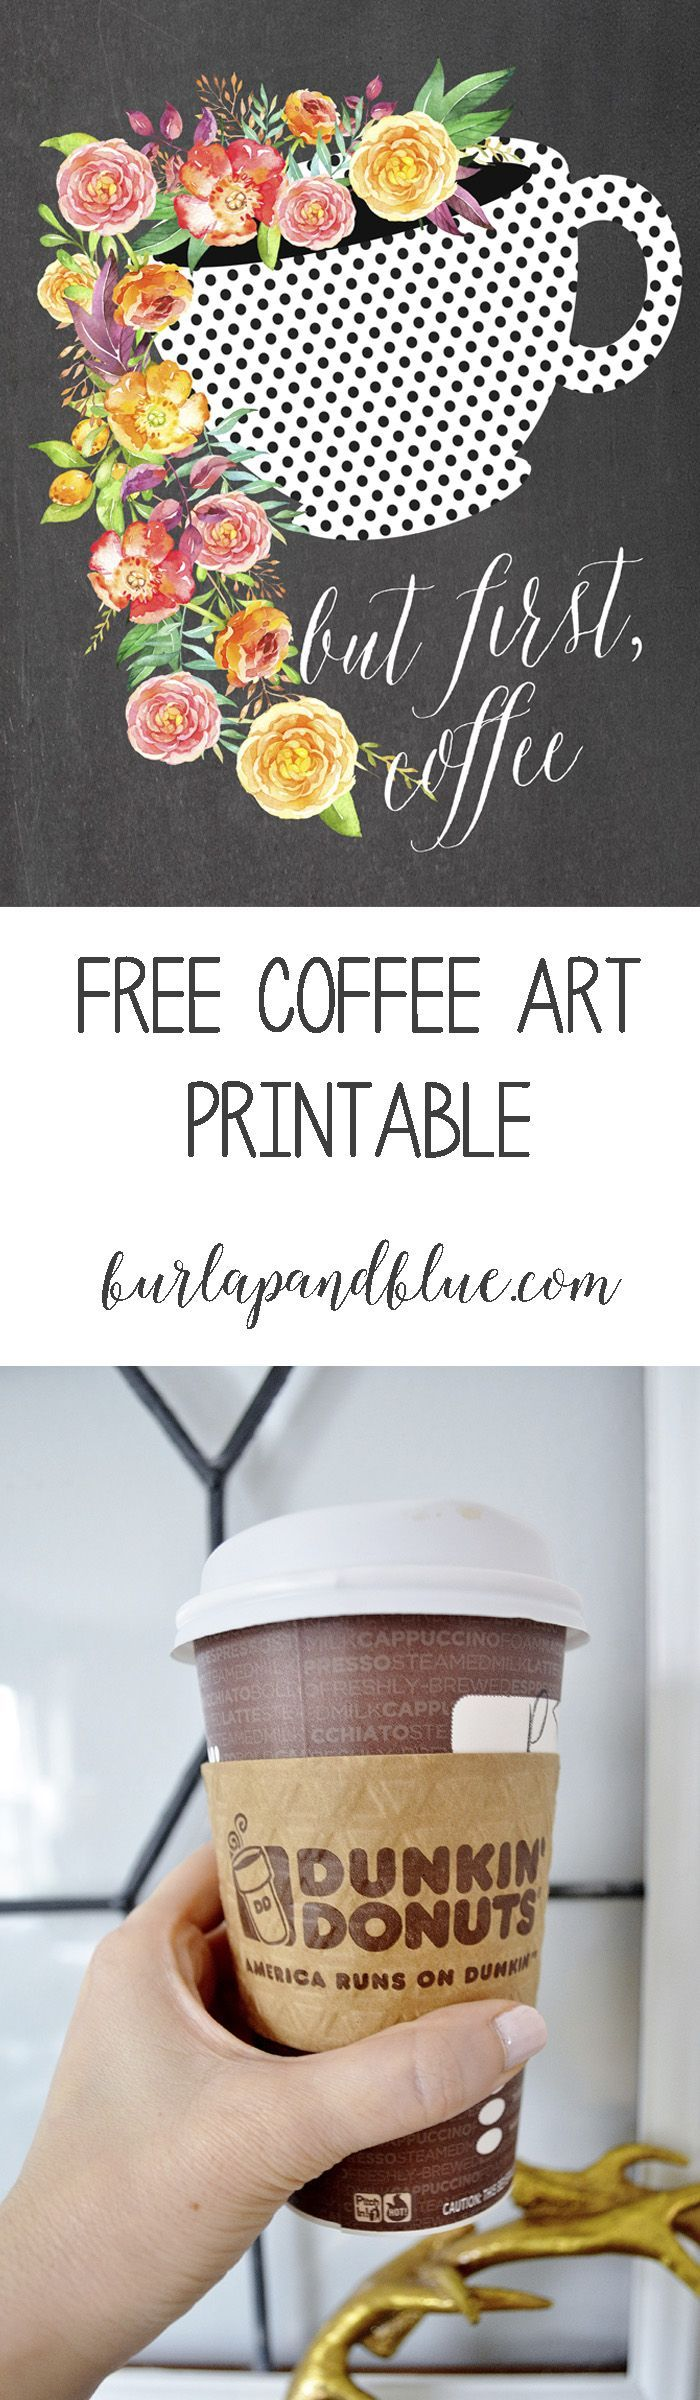 "free printable coffee art! chalkboard and floral, ""but first, coffee"""